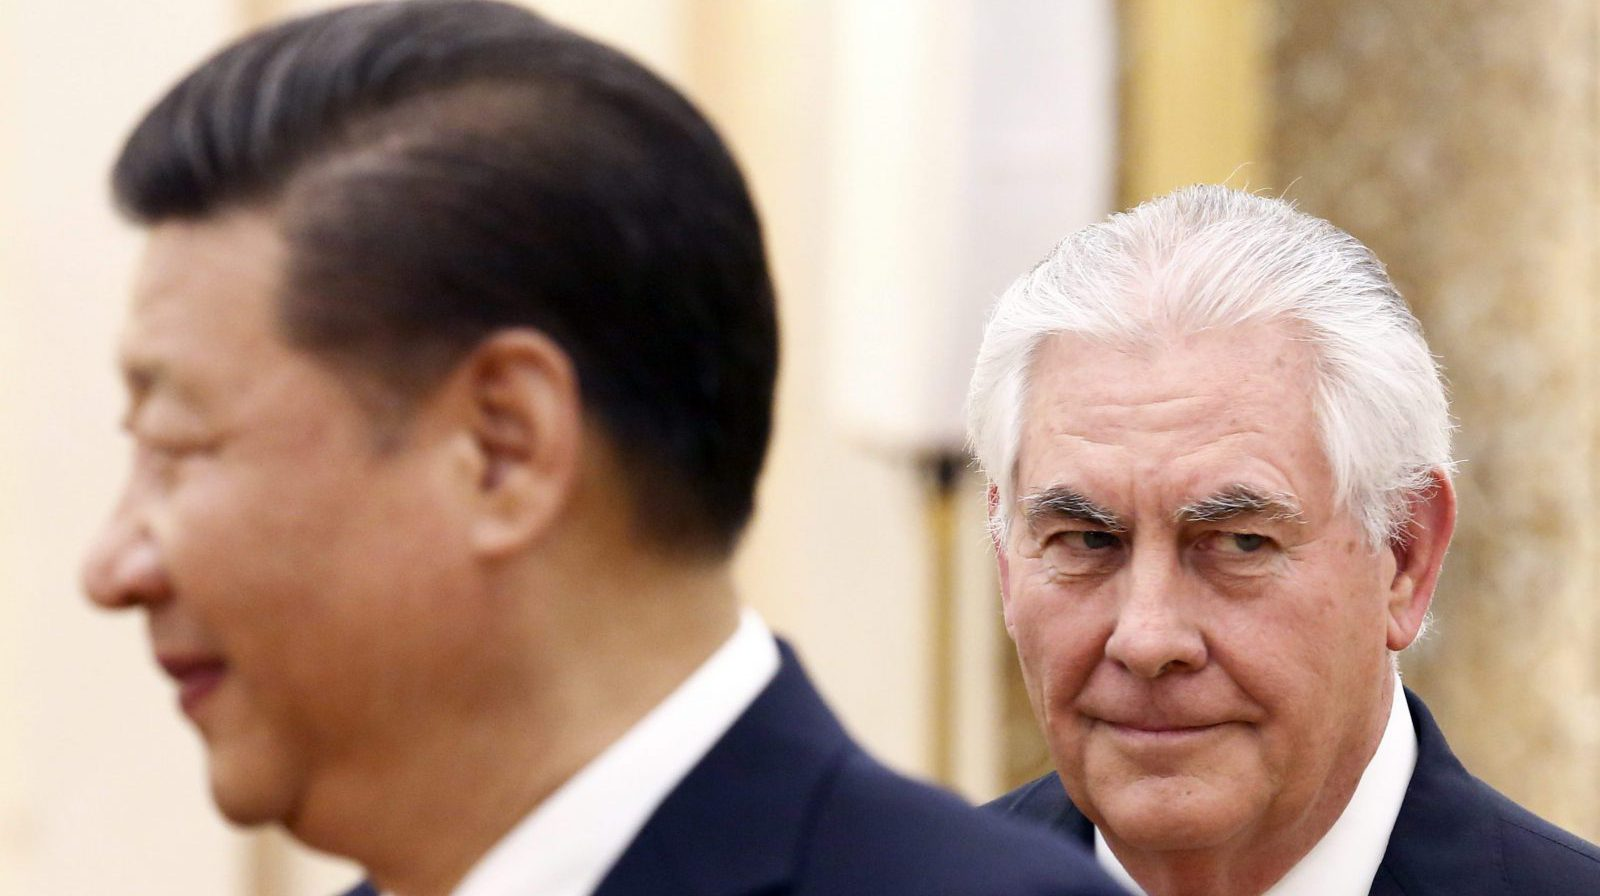 China's President Xi Jinping, left, stands near U.S. State of Secretary Rex Tillerson during a meeting at the Great Hall of the People in Beijing, China, Sunday, March 19, 2017.